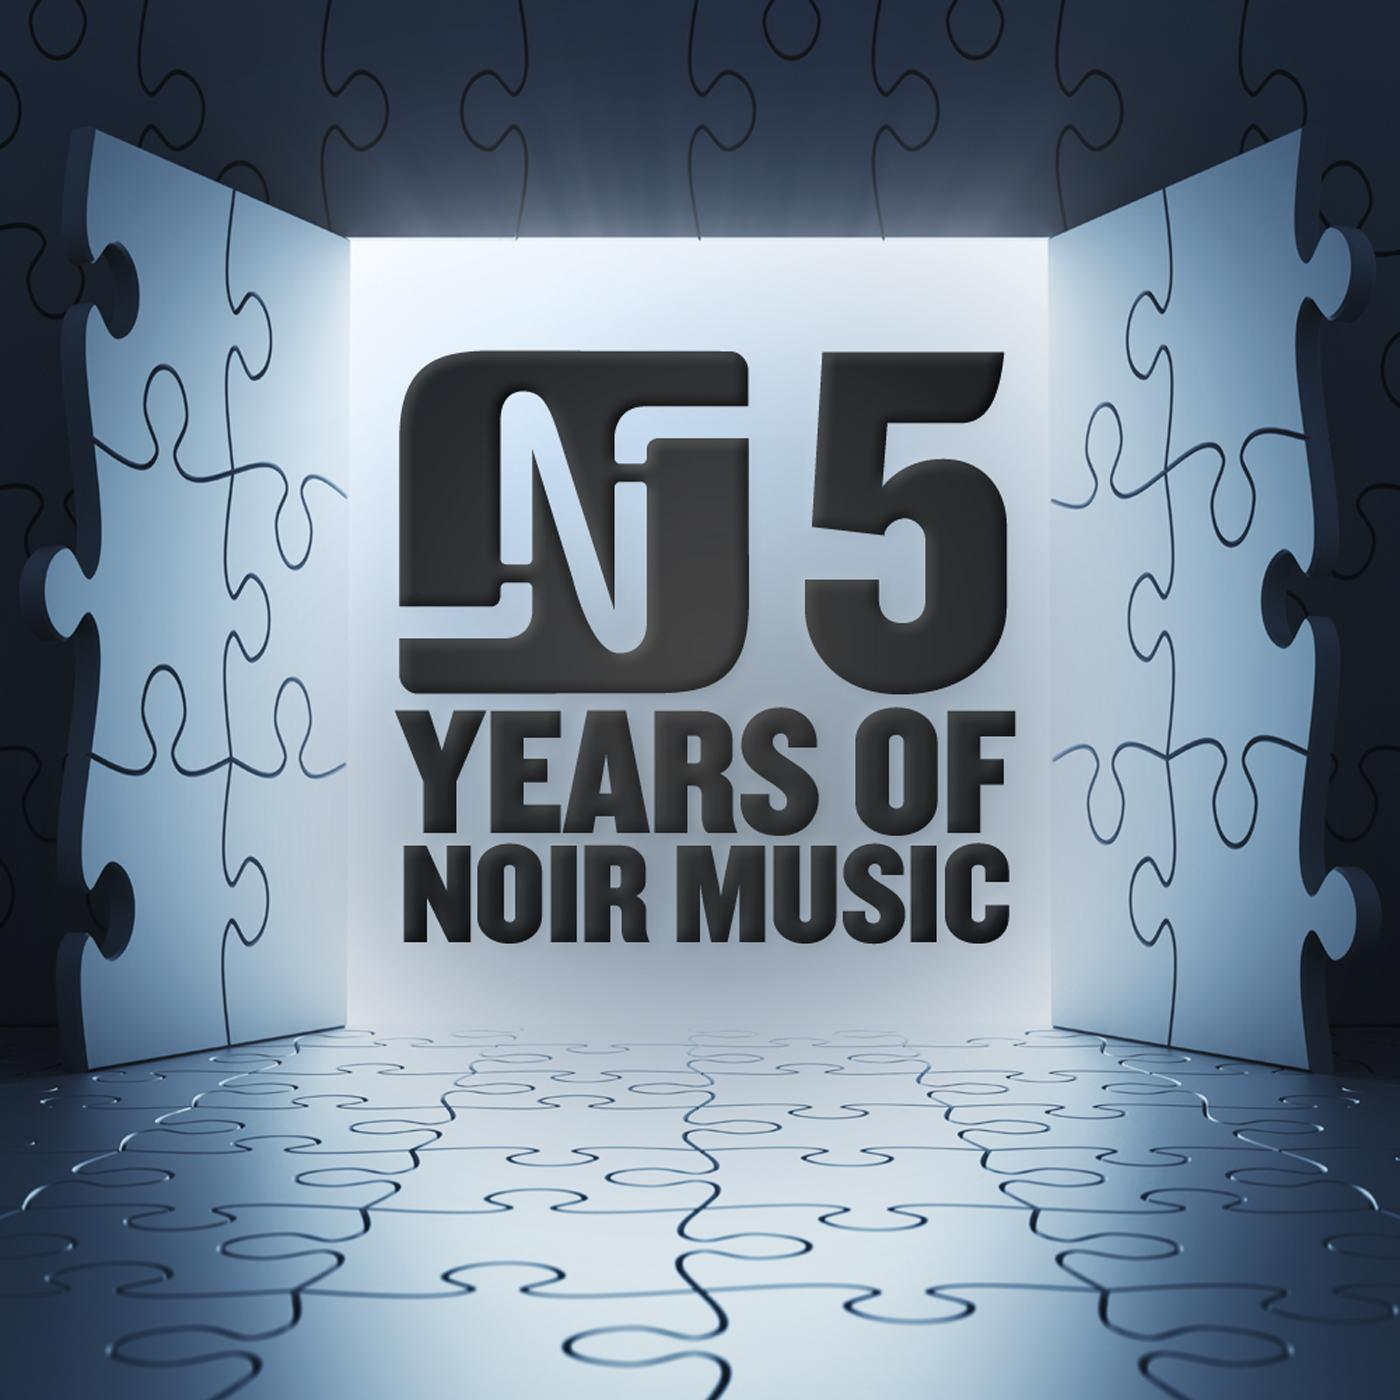 5 Years of Noir Music